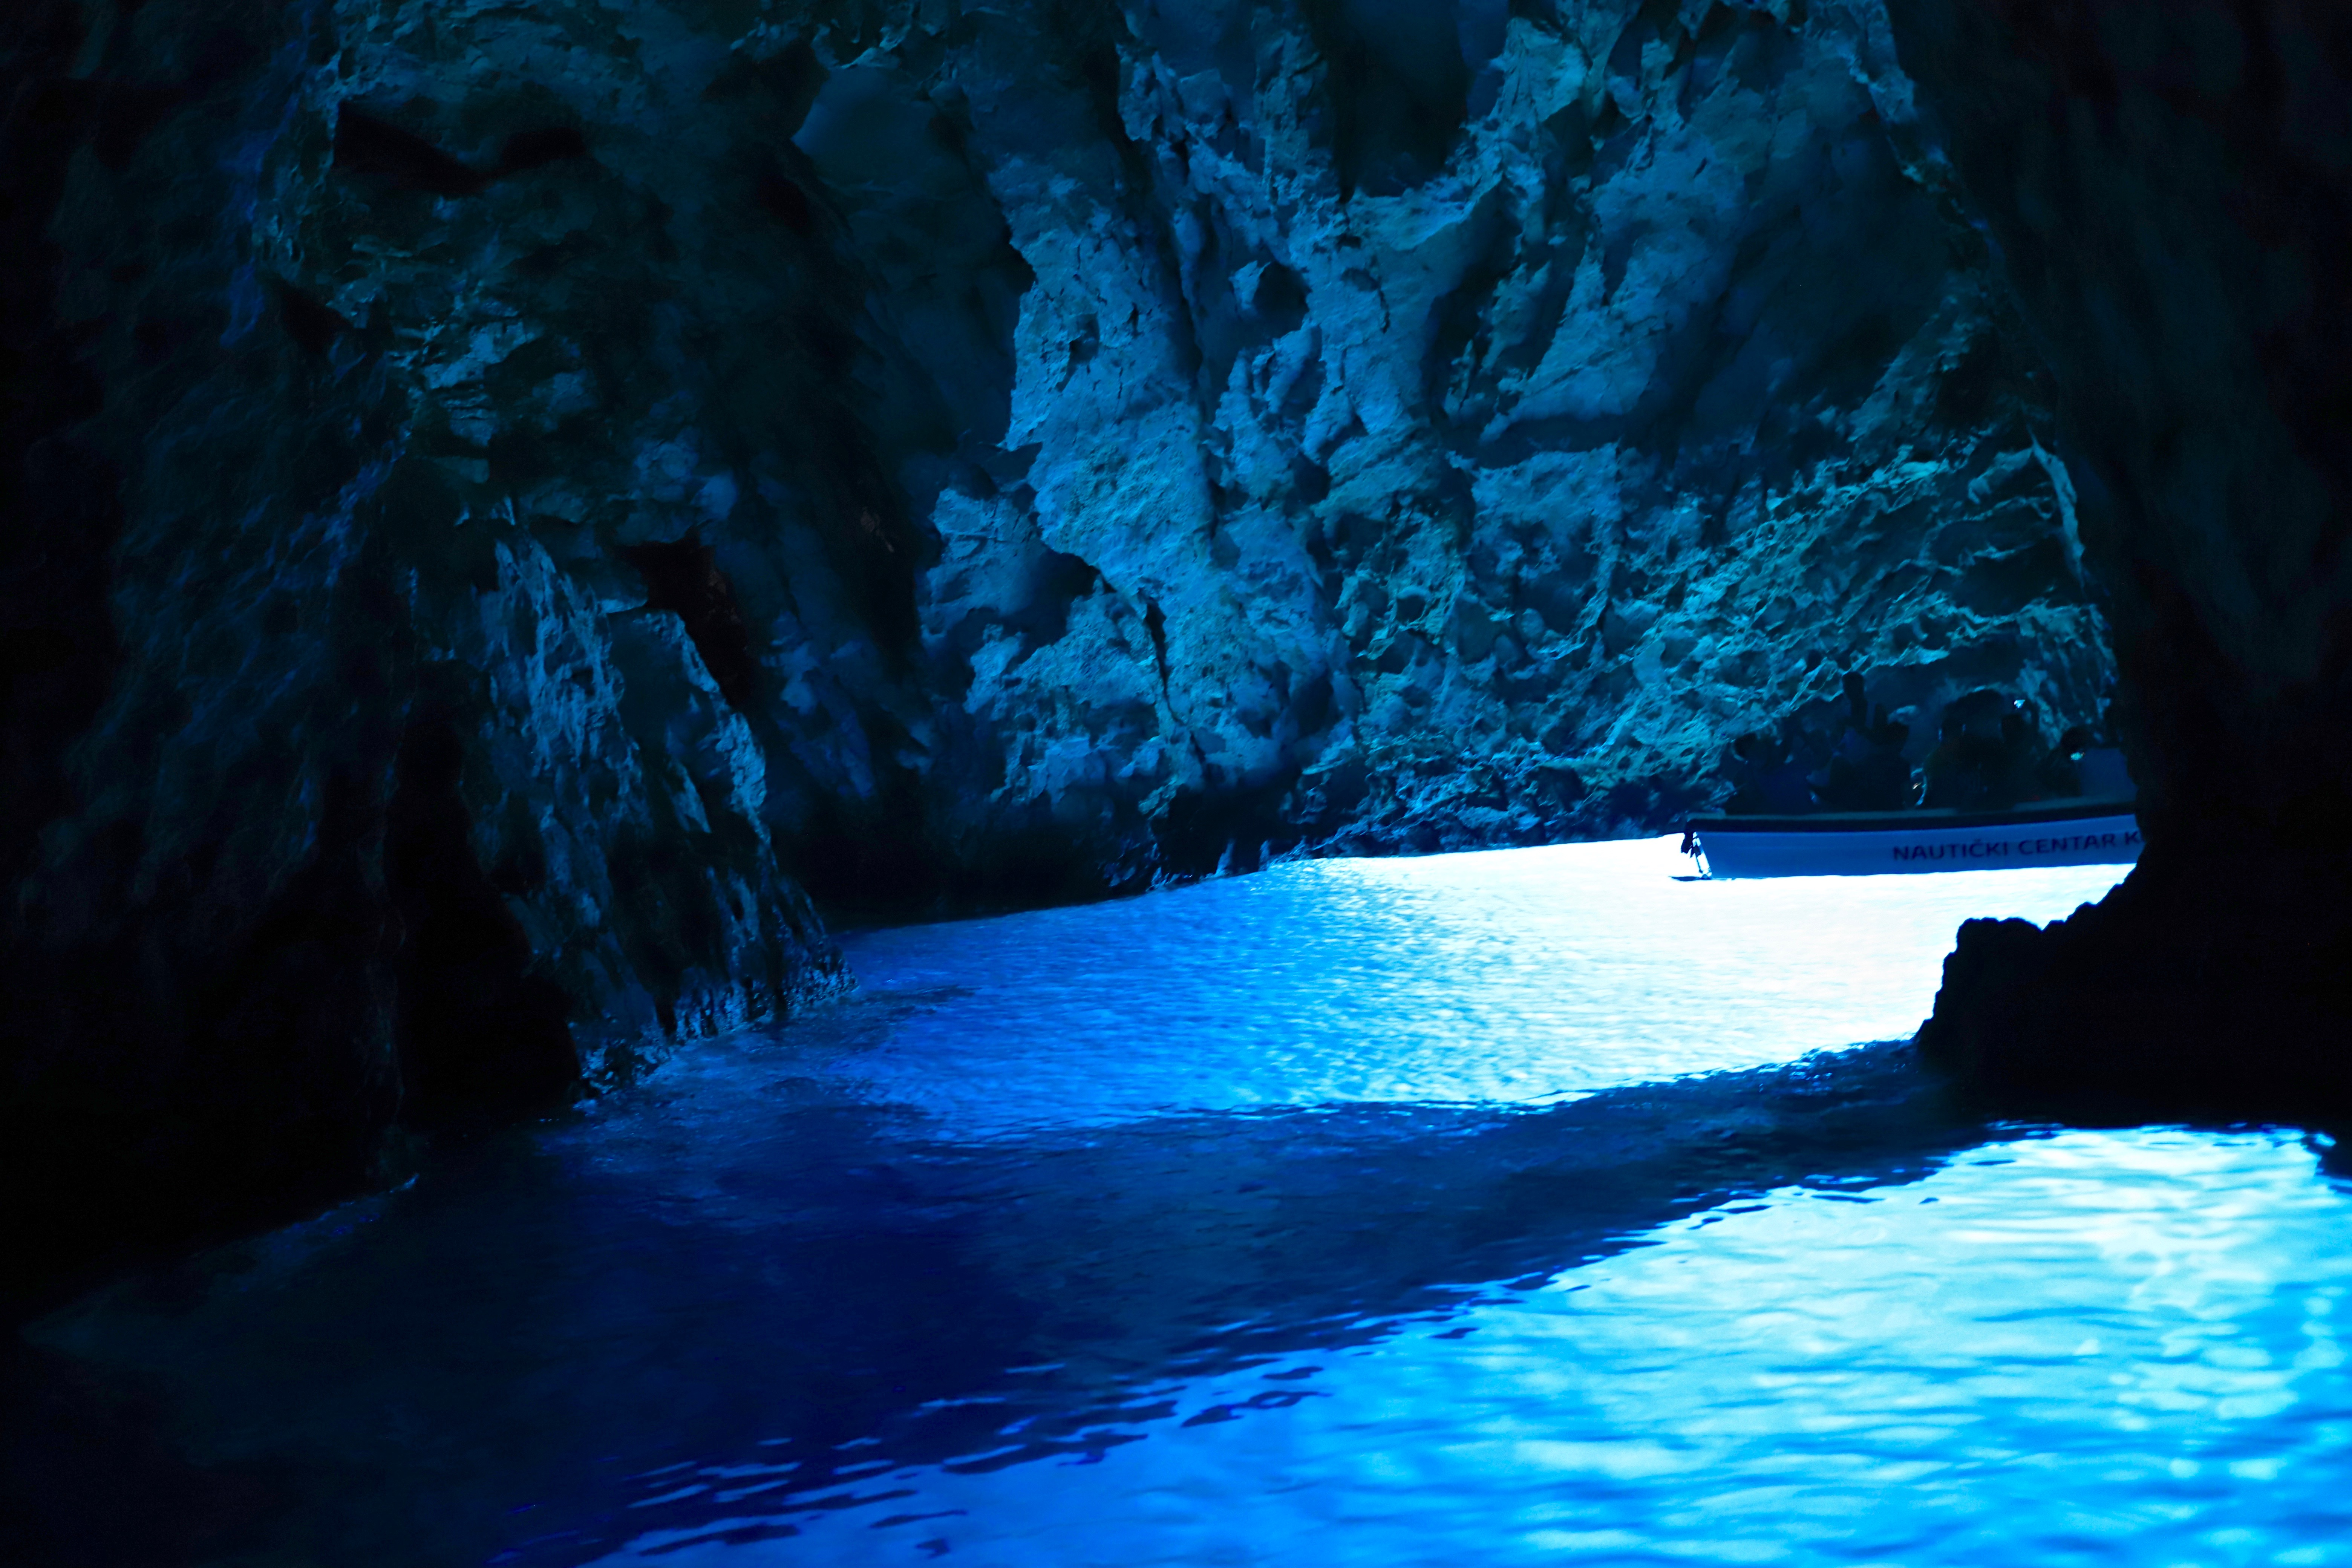 The Blue Cave in Croatia is one of the most popular attractions along the Dalmatian coast, drawing thousands of visitors every summer. As popular natural wonder, you will see photos of the Blue Cave everywhere. This travel blogger learned a few key lessons from her visit to the Blue Cave and she shares her inside tips with you. This post summarizes everything you need to know about visiting the Blue Cave in Croatia!